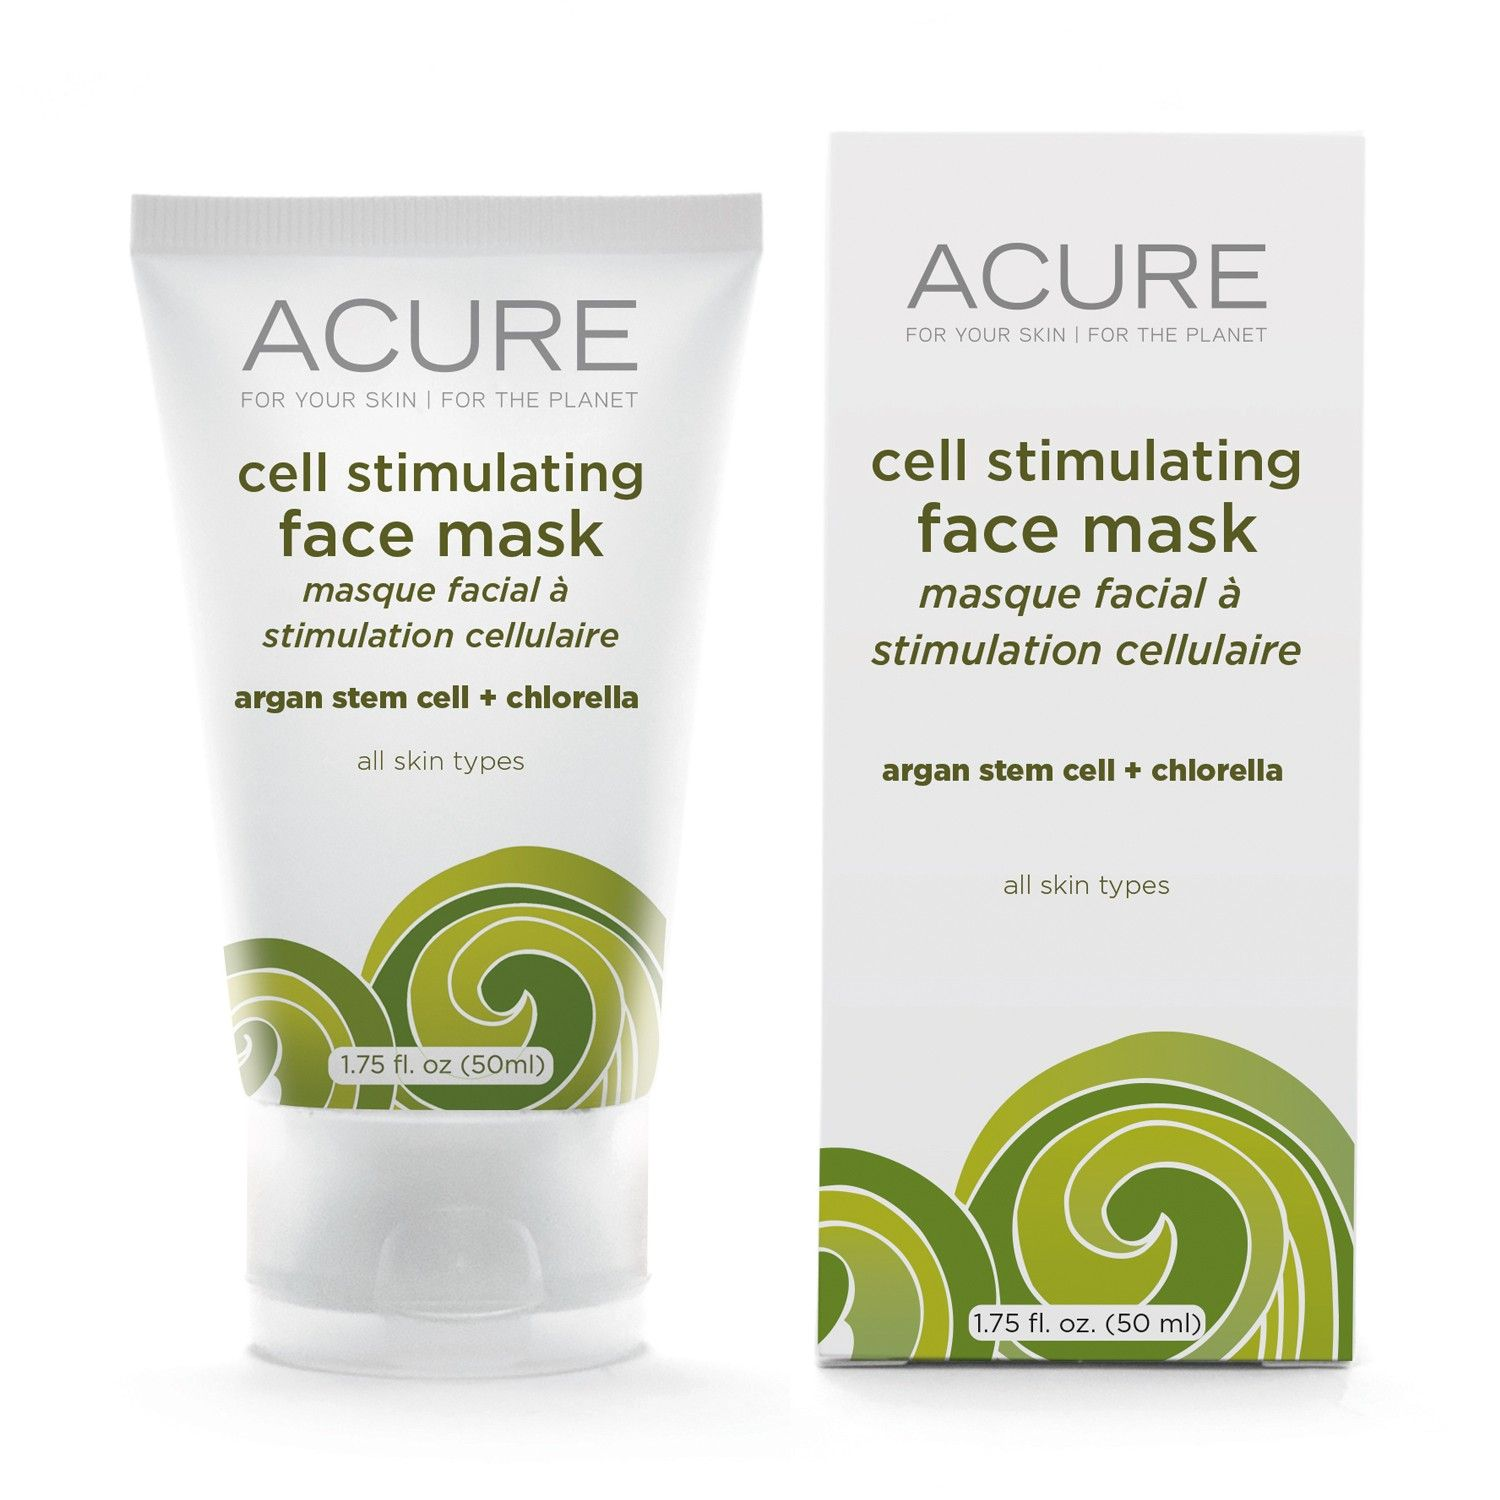 Acure Organics Cell Stimulating Facial Mask, $9.99